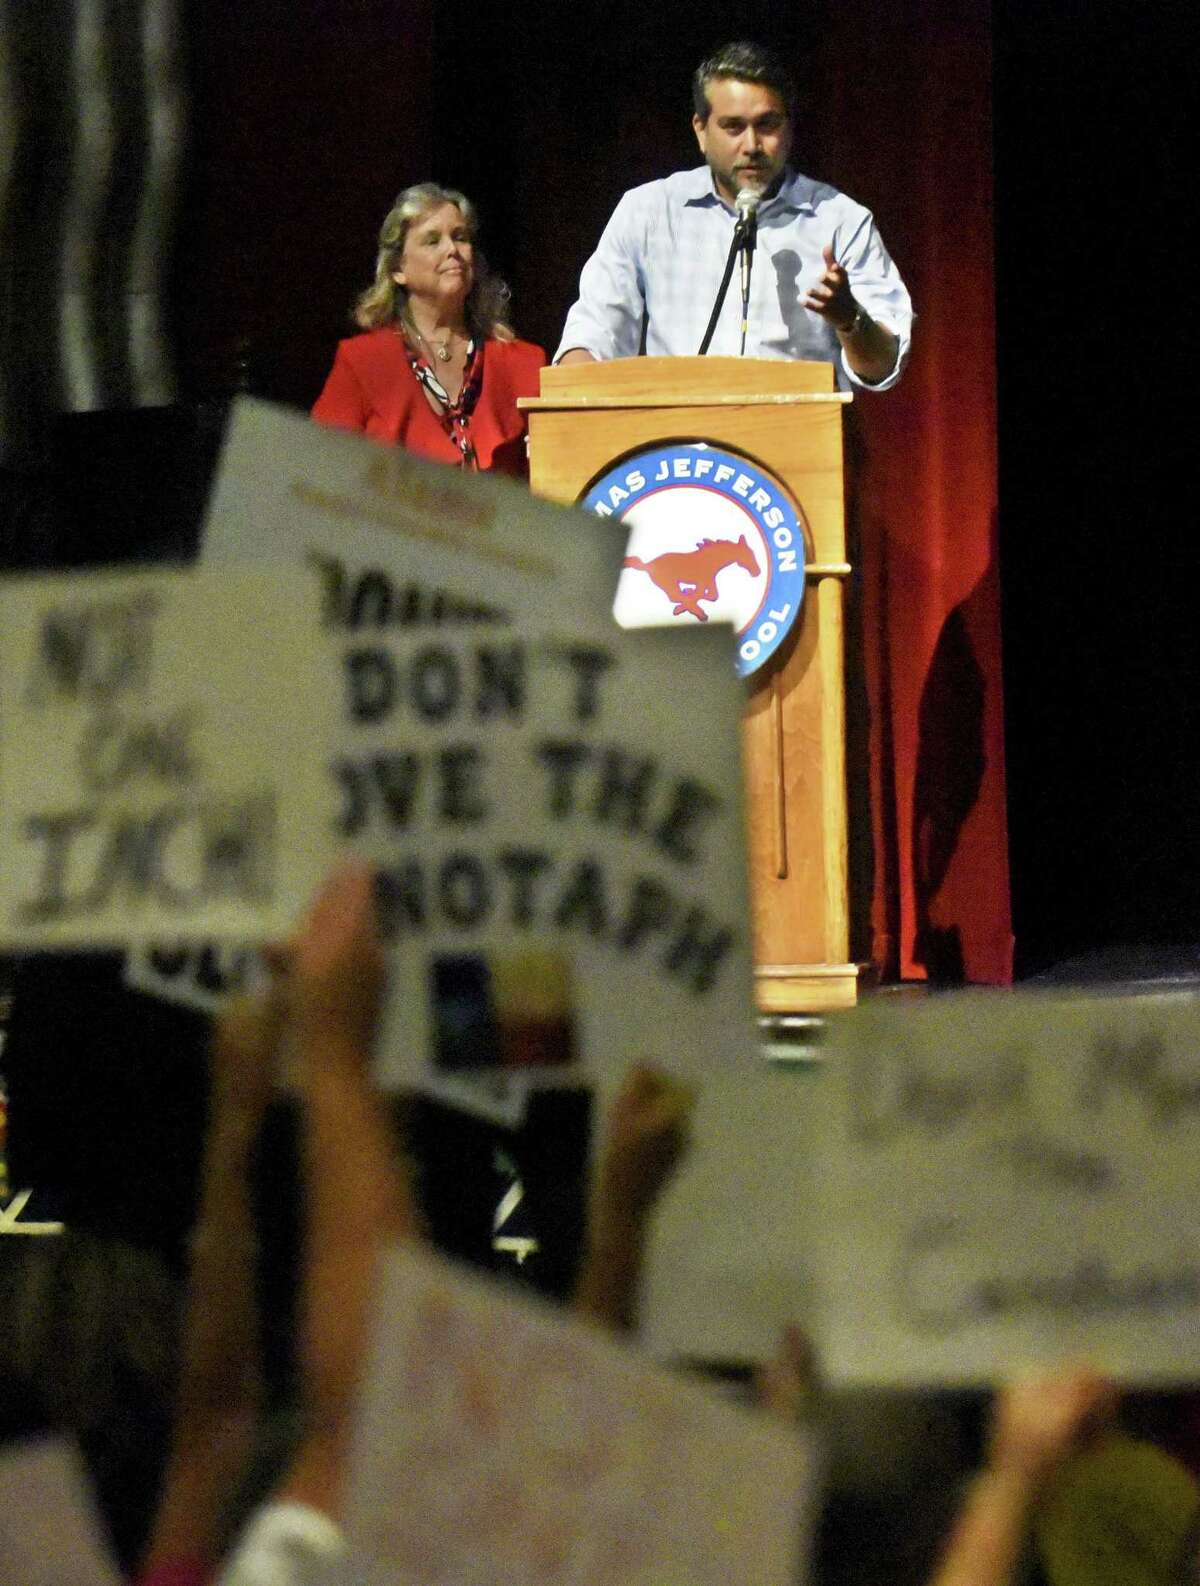 Councilman Robert Trevino and City of San Antonio Archaeologist Kay Hindes listen as people opposed to moving the Cenotaph express themselves during a July 18 meeting at Jefferson High School.